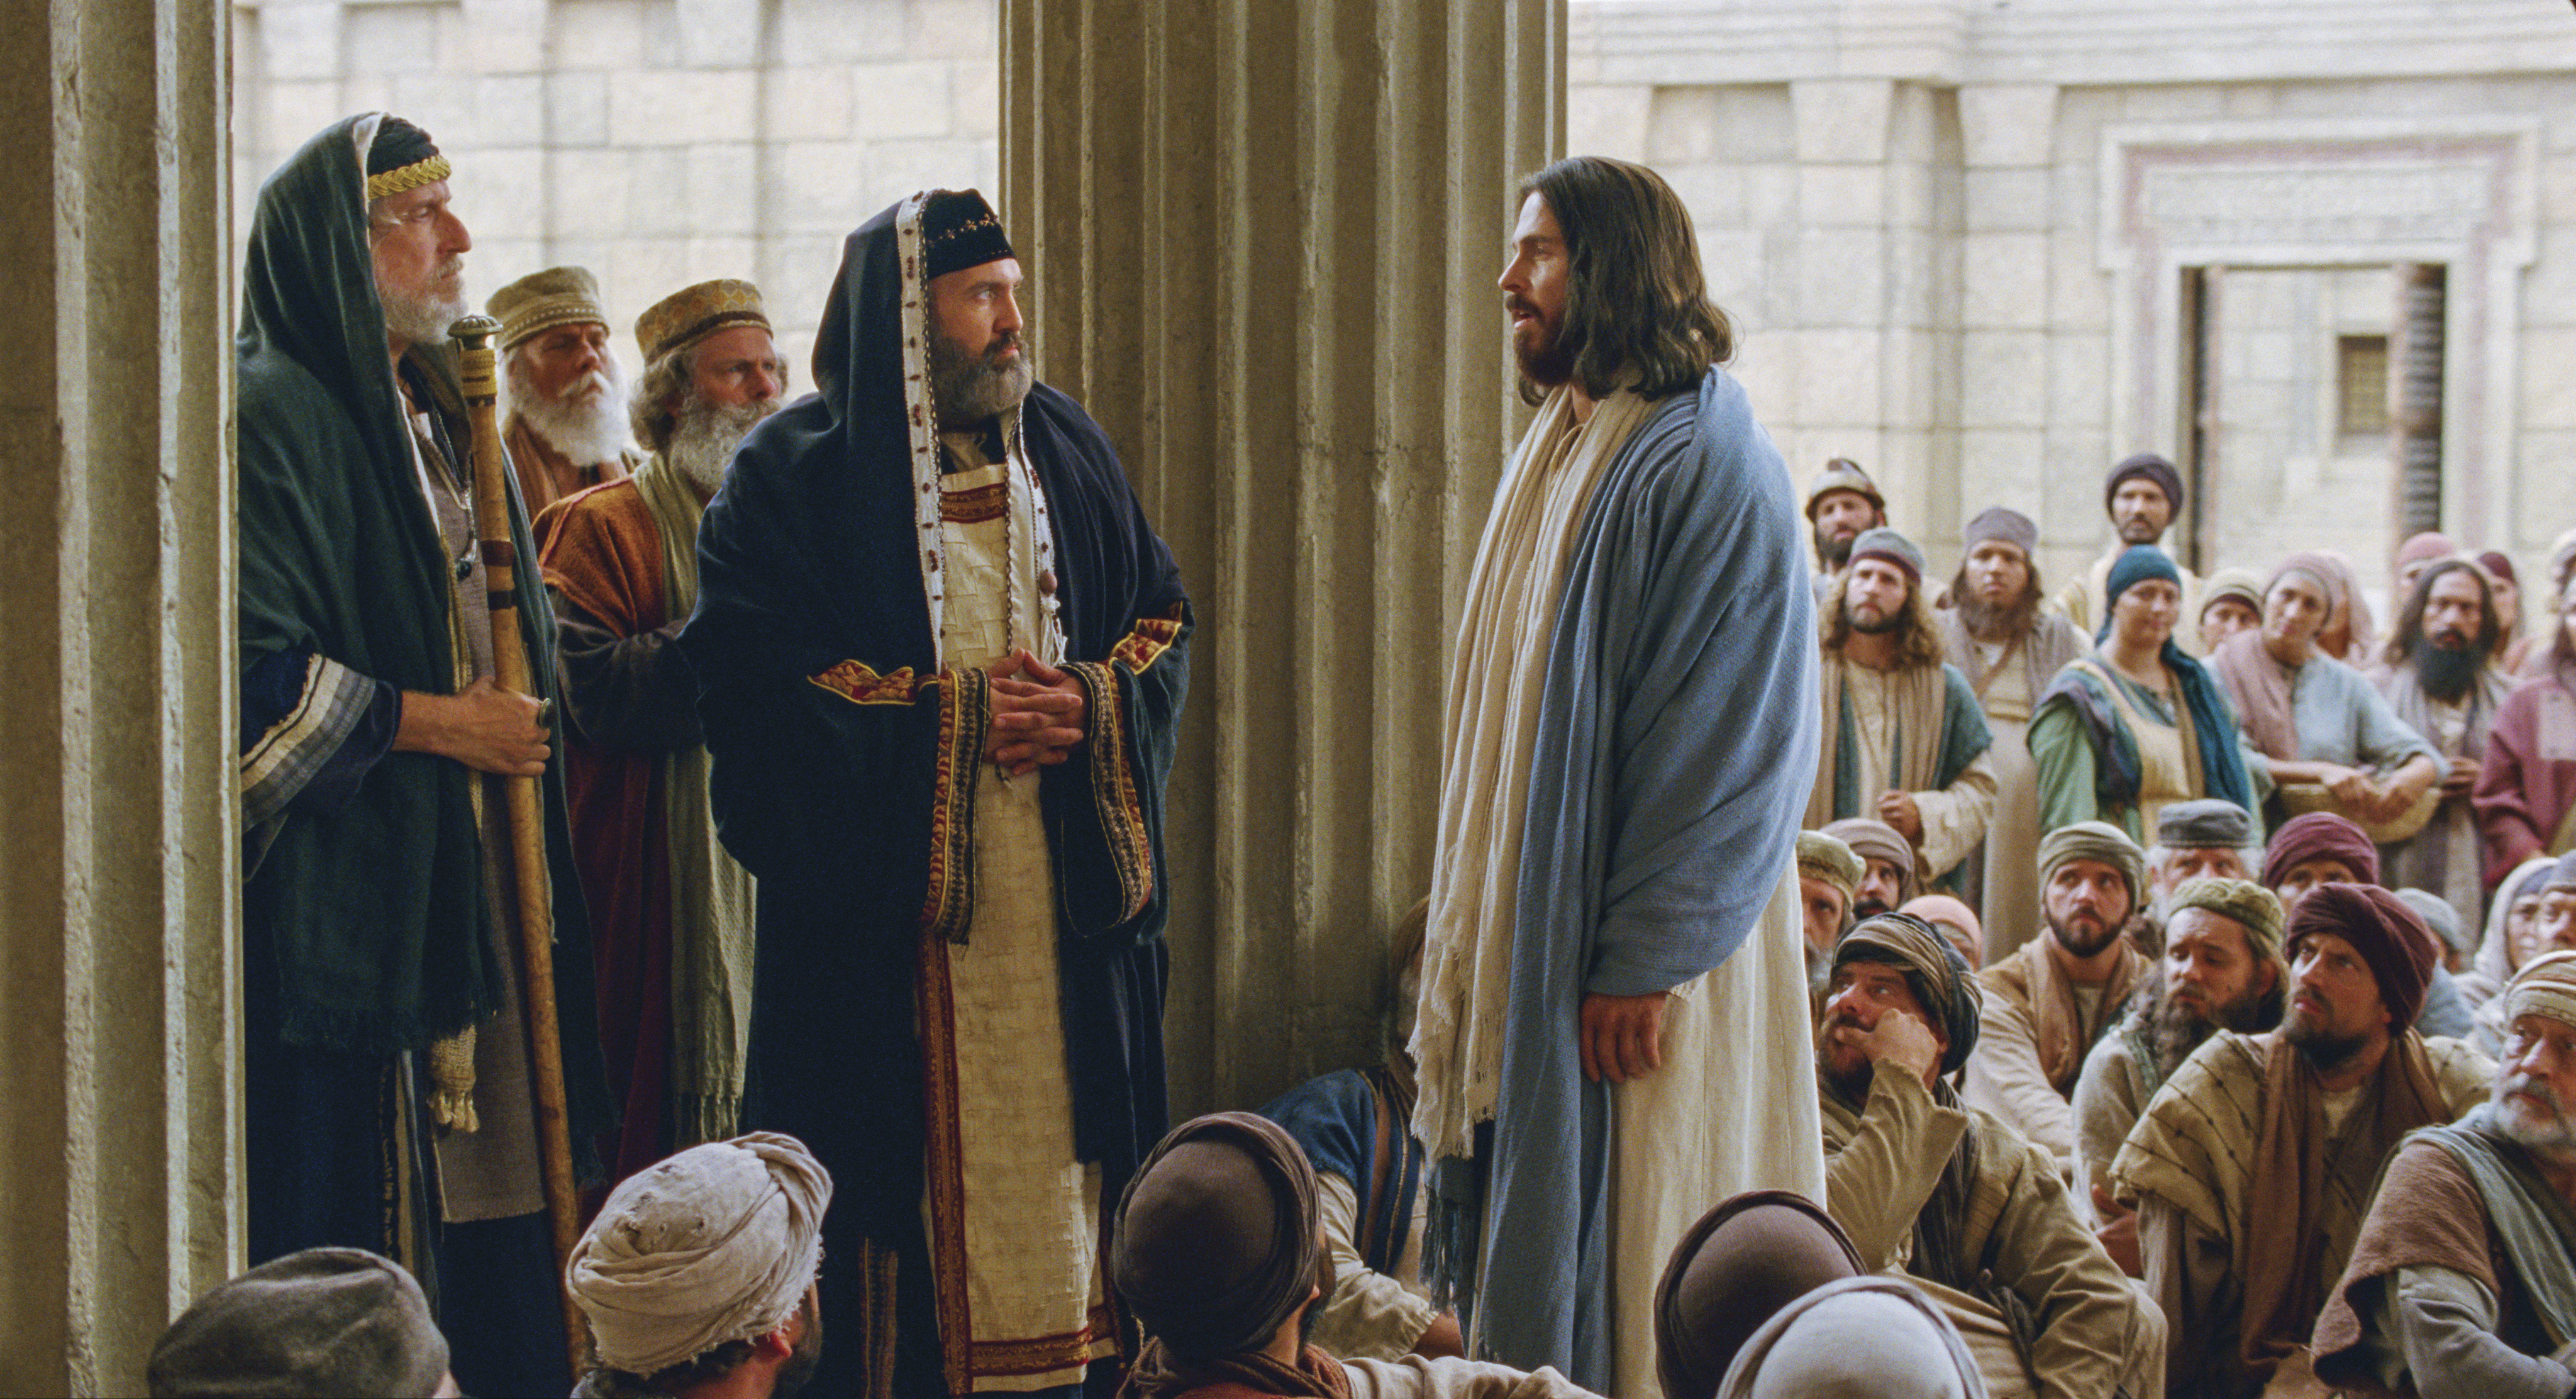 The chief priests question Christ's authority.